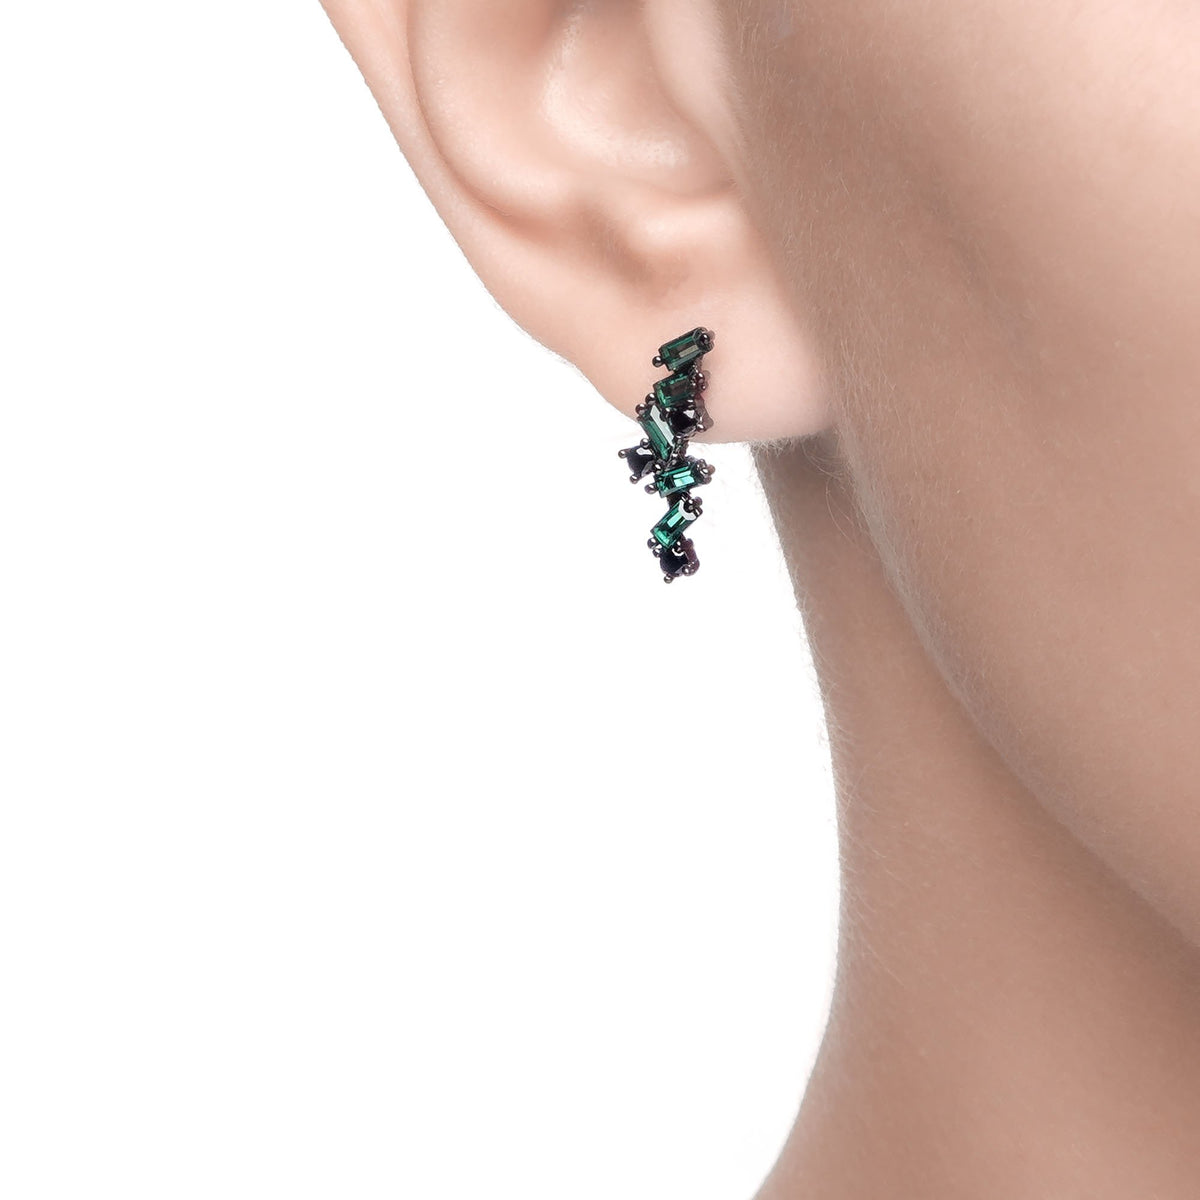 Ferentina | Zabaione Earrings | 925 Silver | Green & Black CZ | Black Rhodium Plated